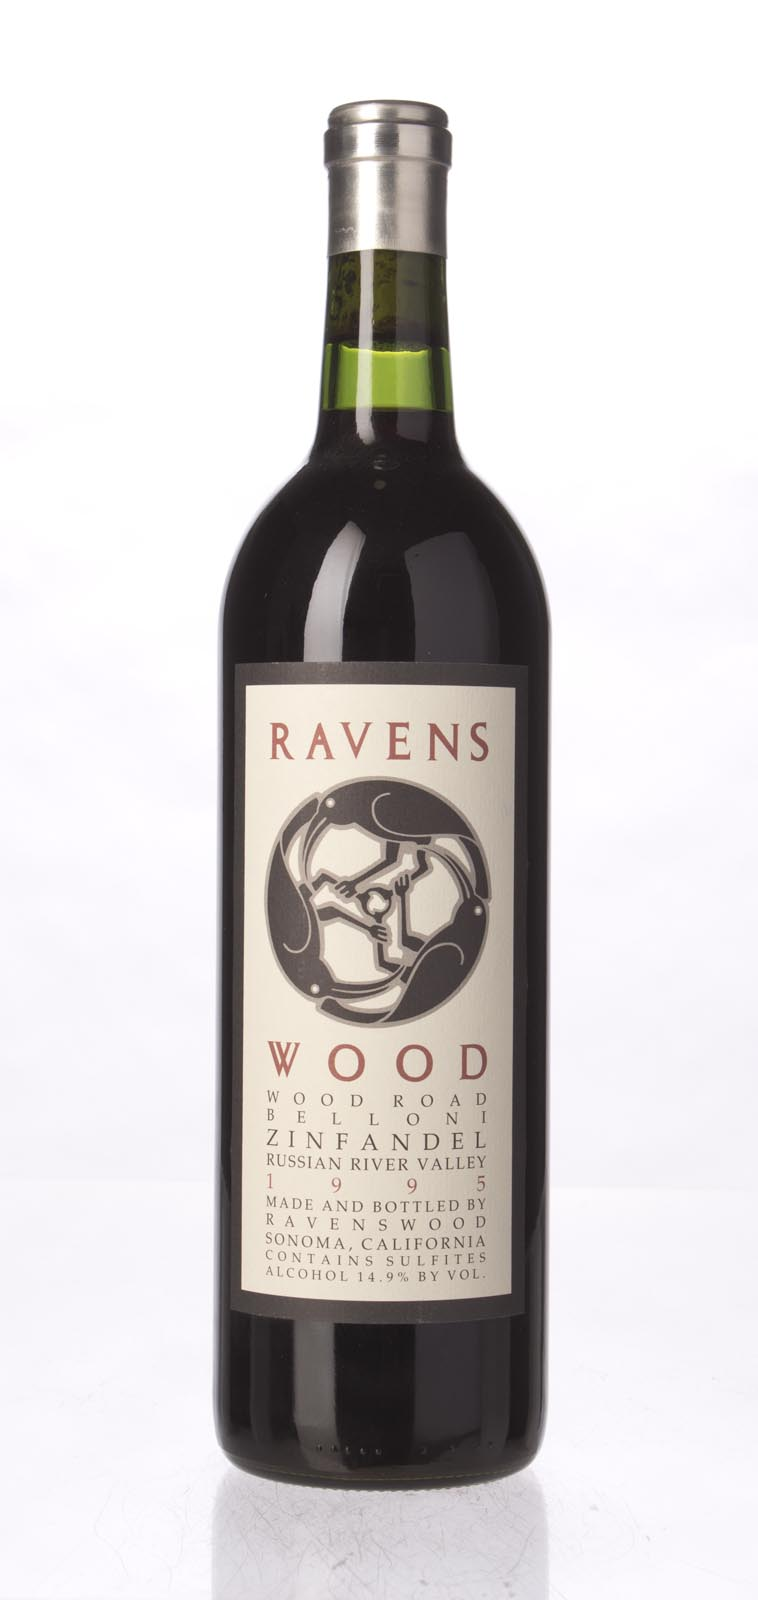 Ravenswood Zinfandel Wood Road Belloni 1995, 750ml (WA90) from The BPW - Merchants of rare and fine wines.